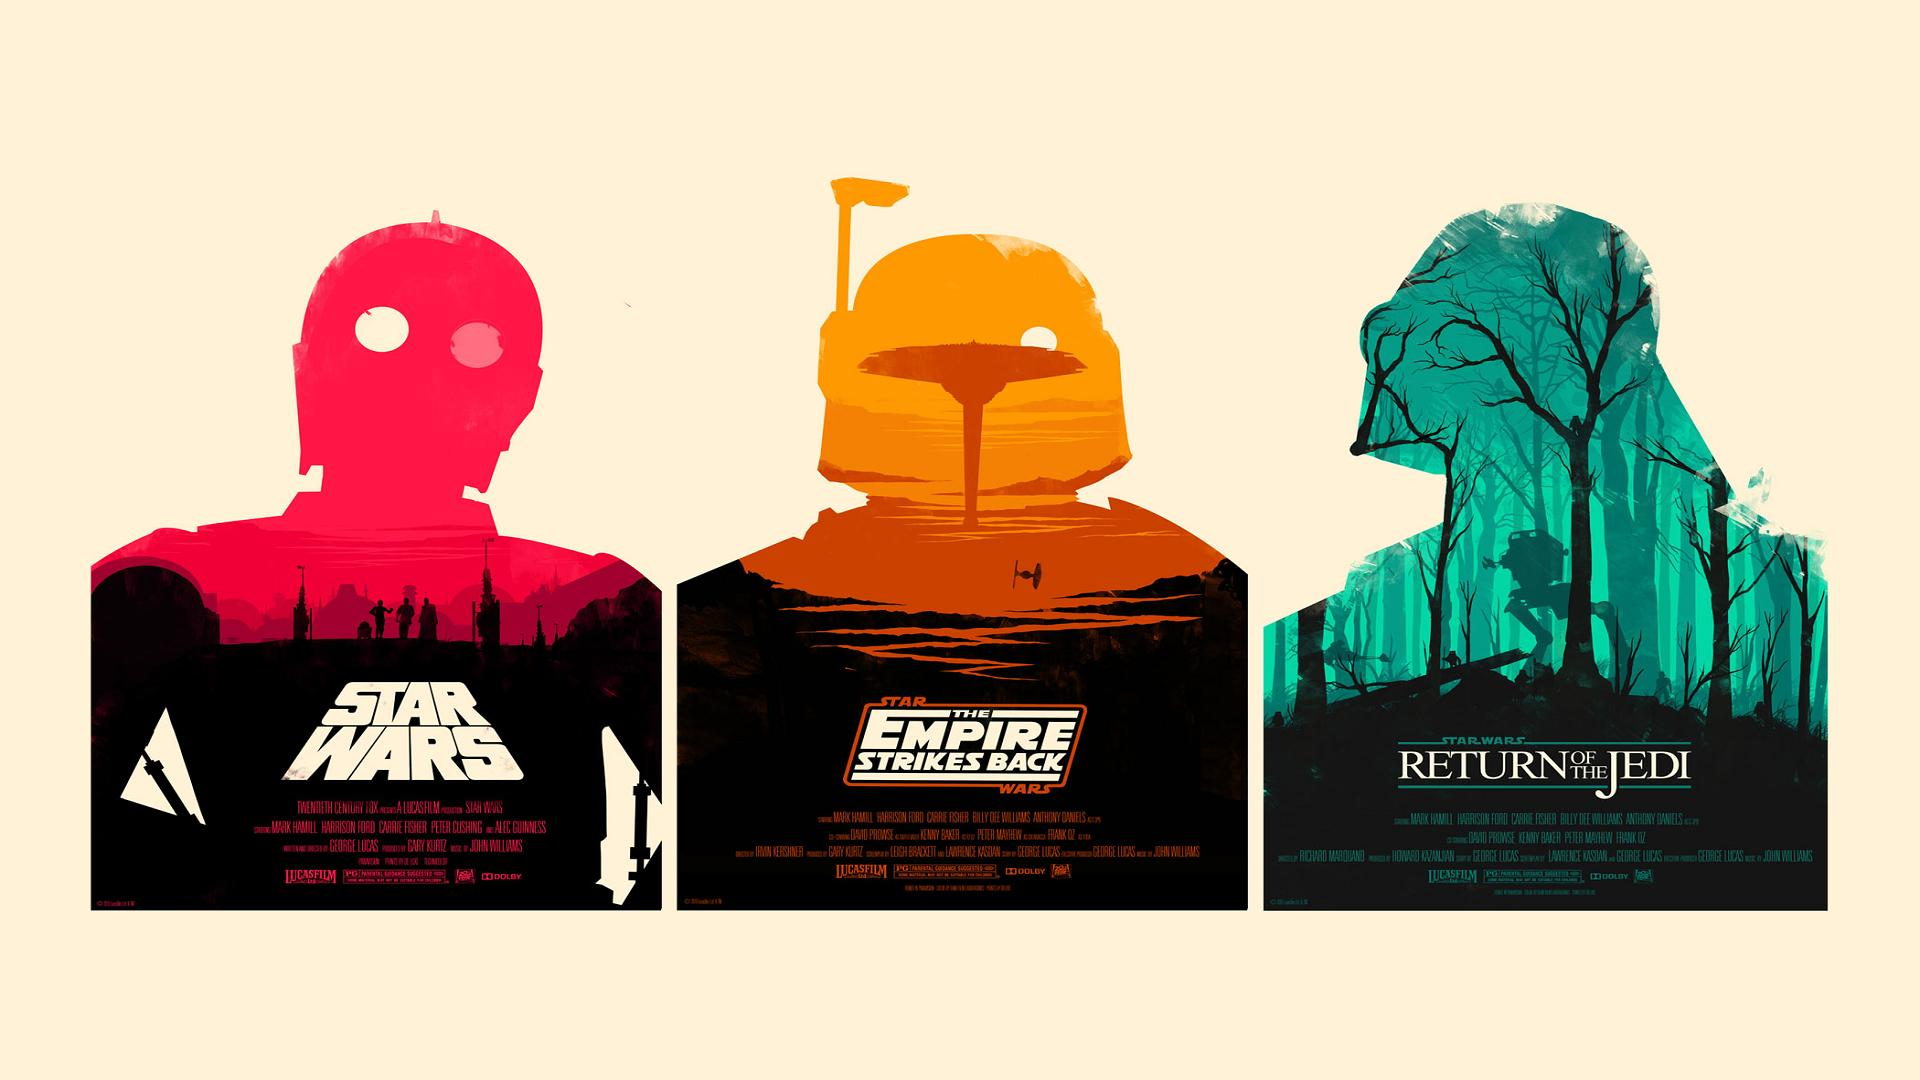 Image_2_YLRKj The Best Star Wars Posters: Originals and fan-made ones